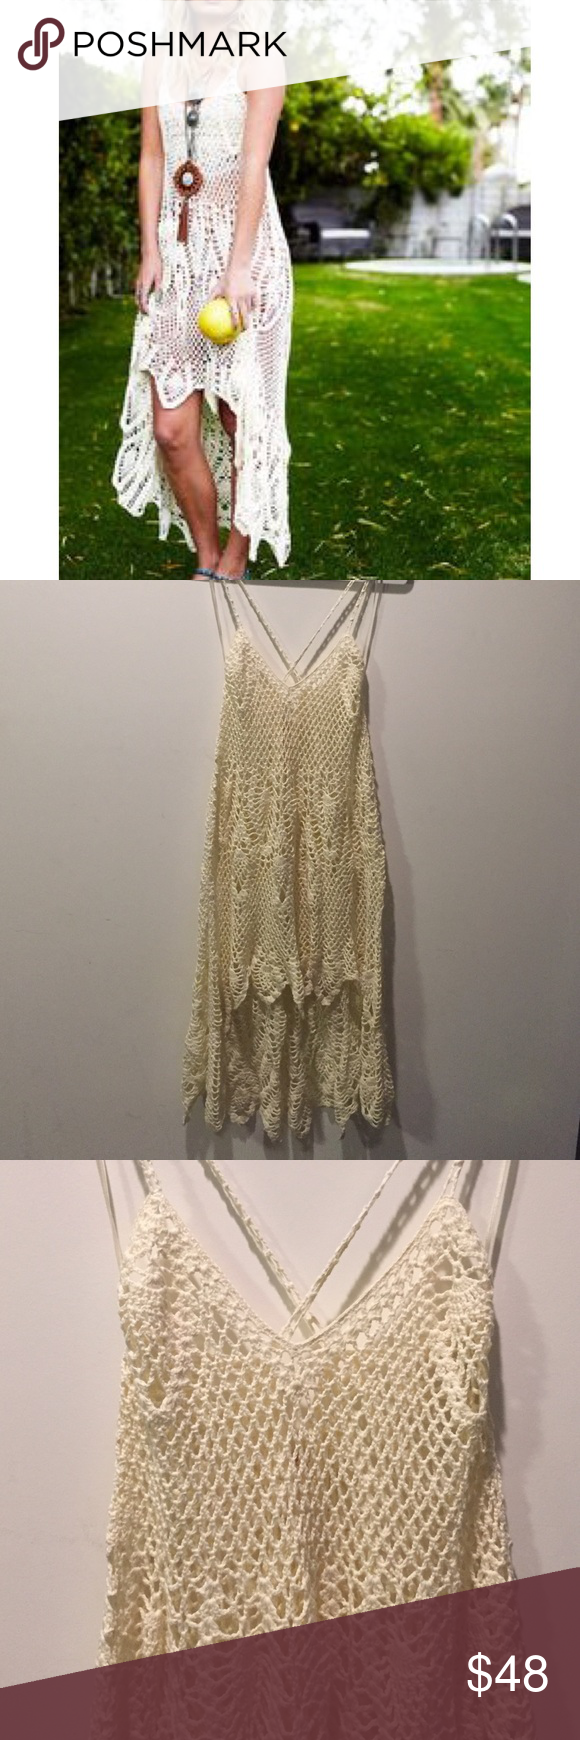 Free People Crochet Dress Stitch crochet dress with high low scalloped hem. Skinny straps that criss cross in the back. In like new condition. Free People Dresses Asymmetrical